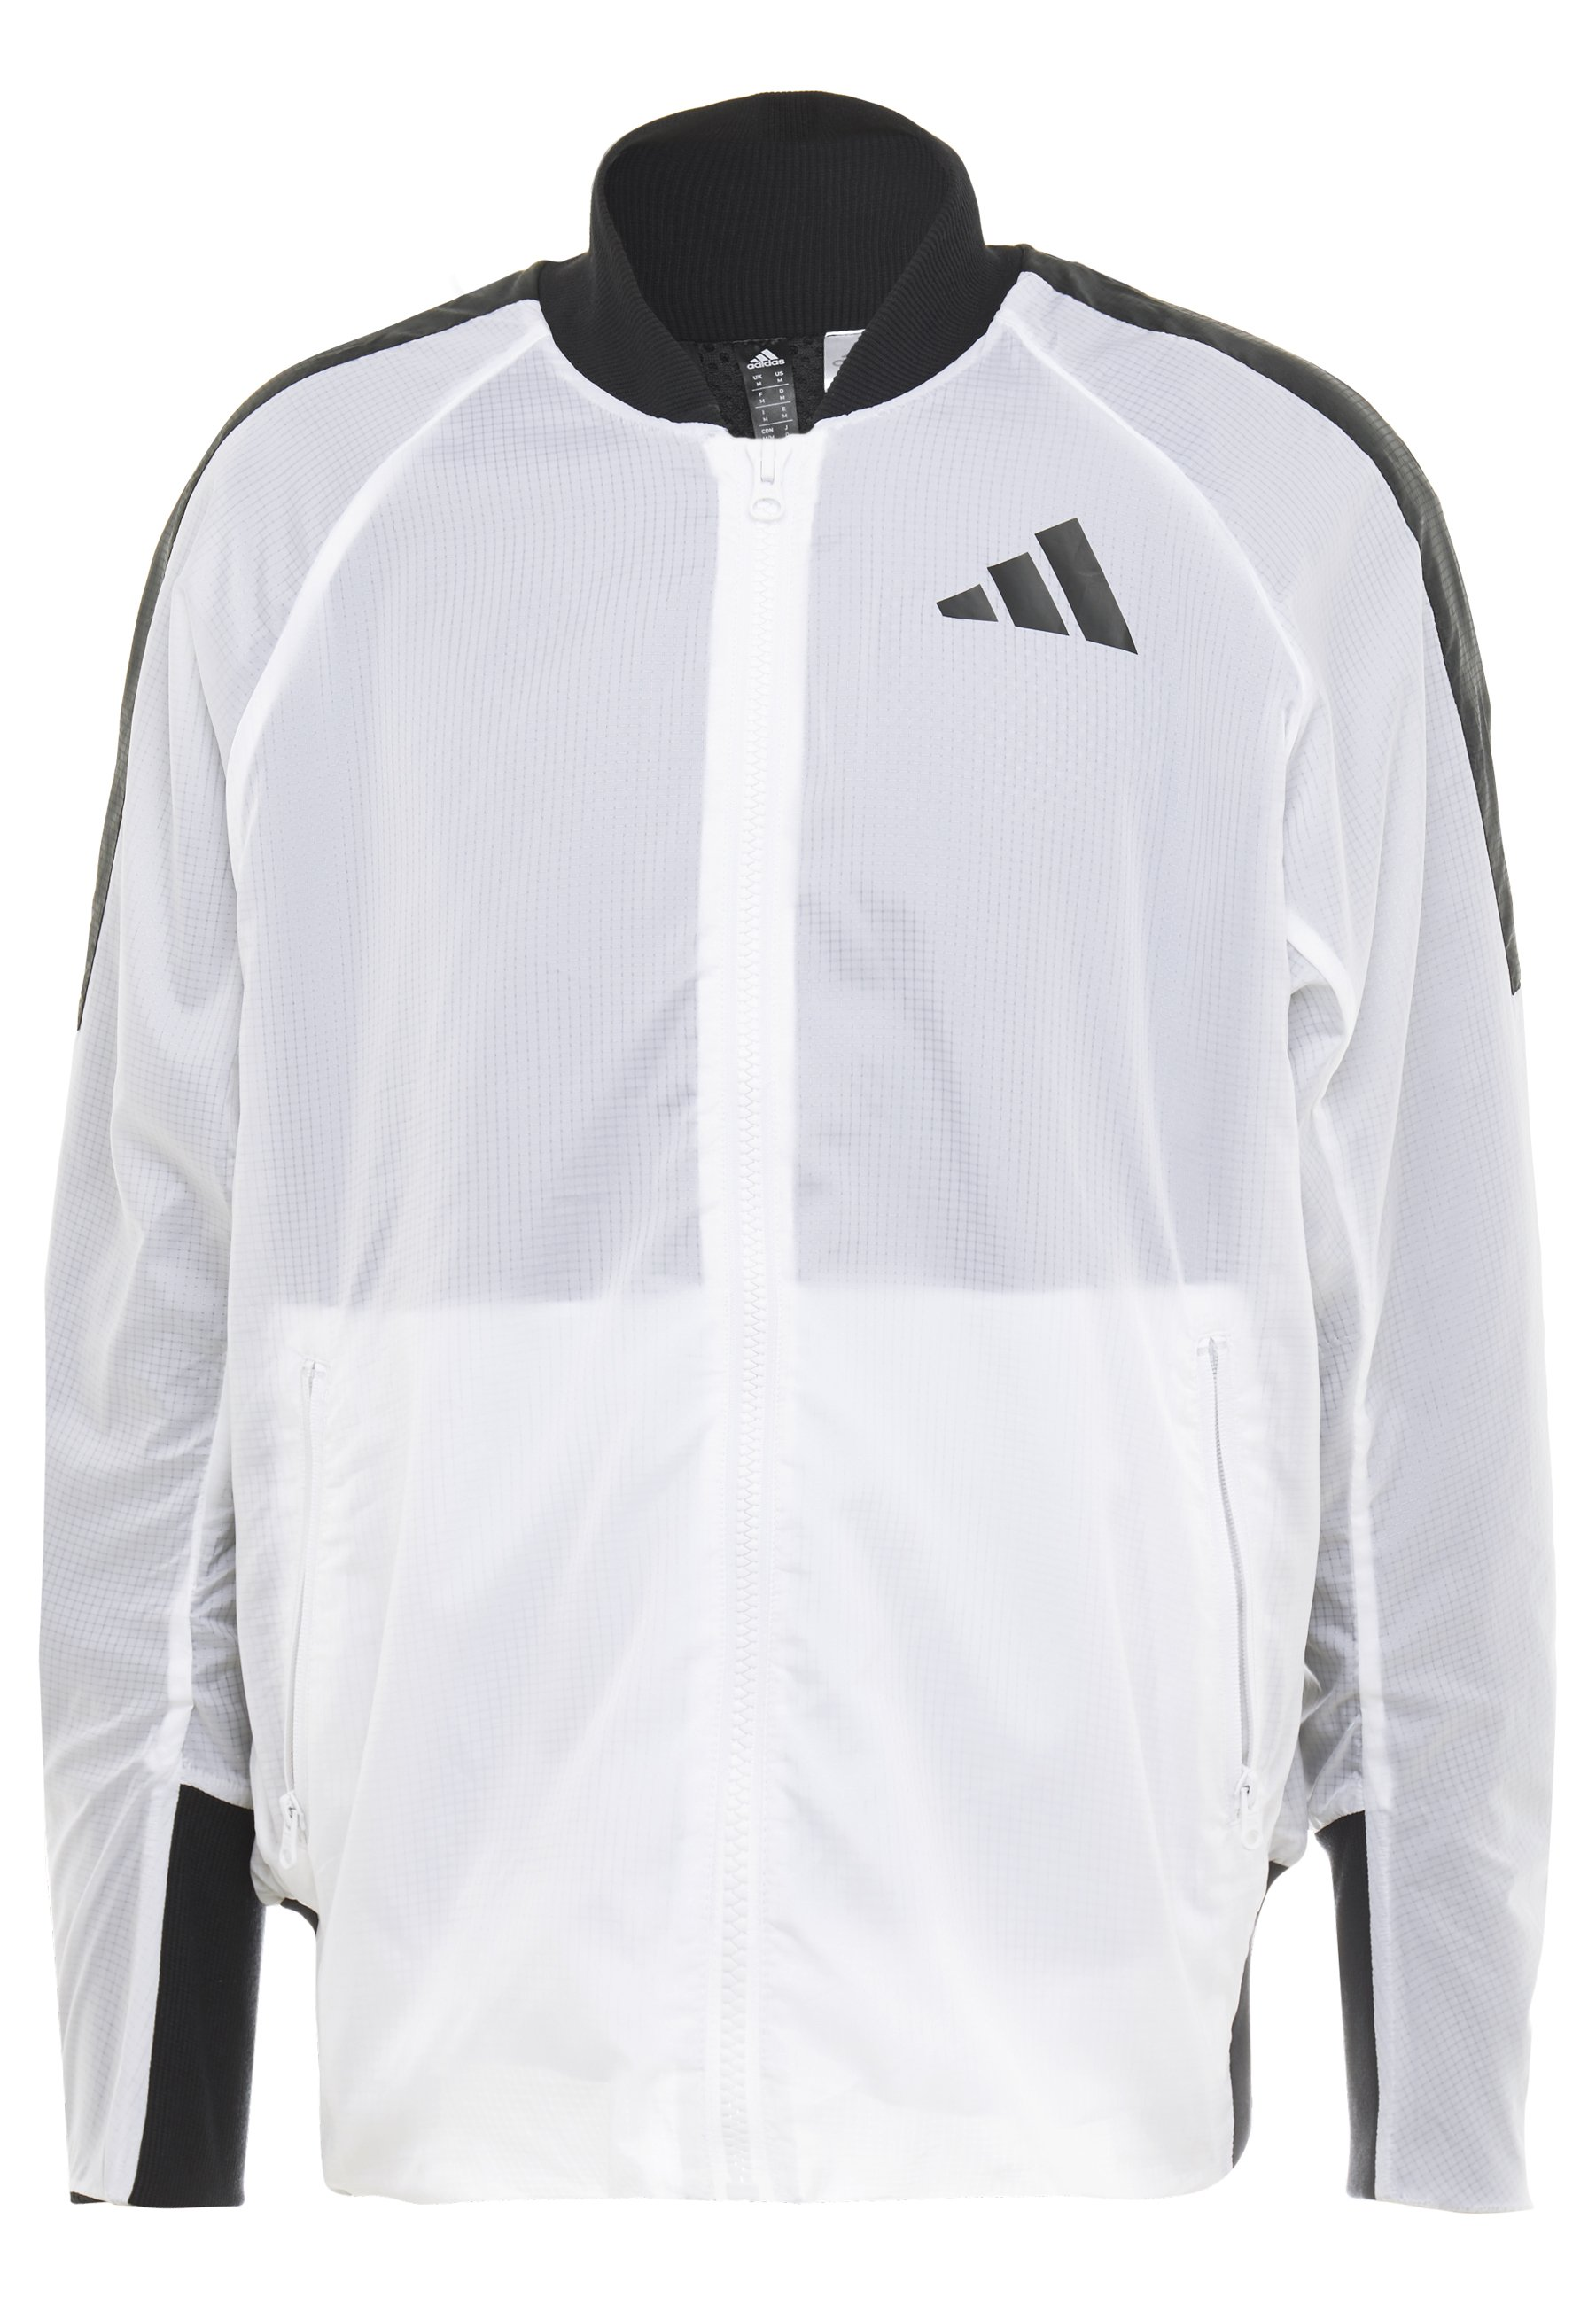 OVERSIZE STREET ATHLETICS JACKET Trainingsjacke white